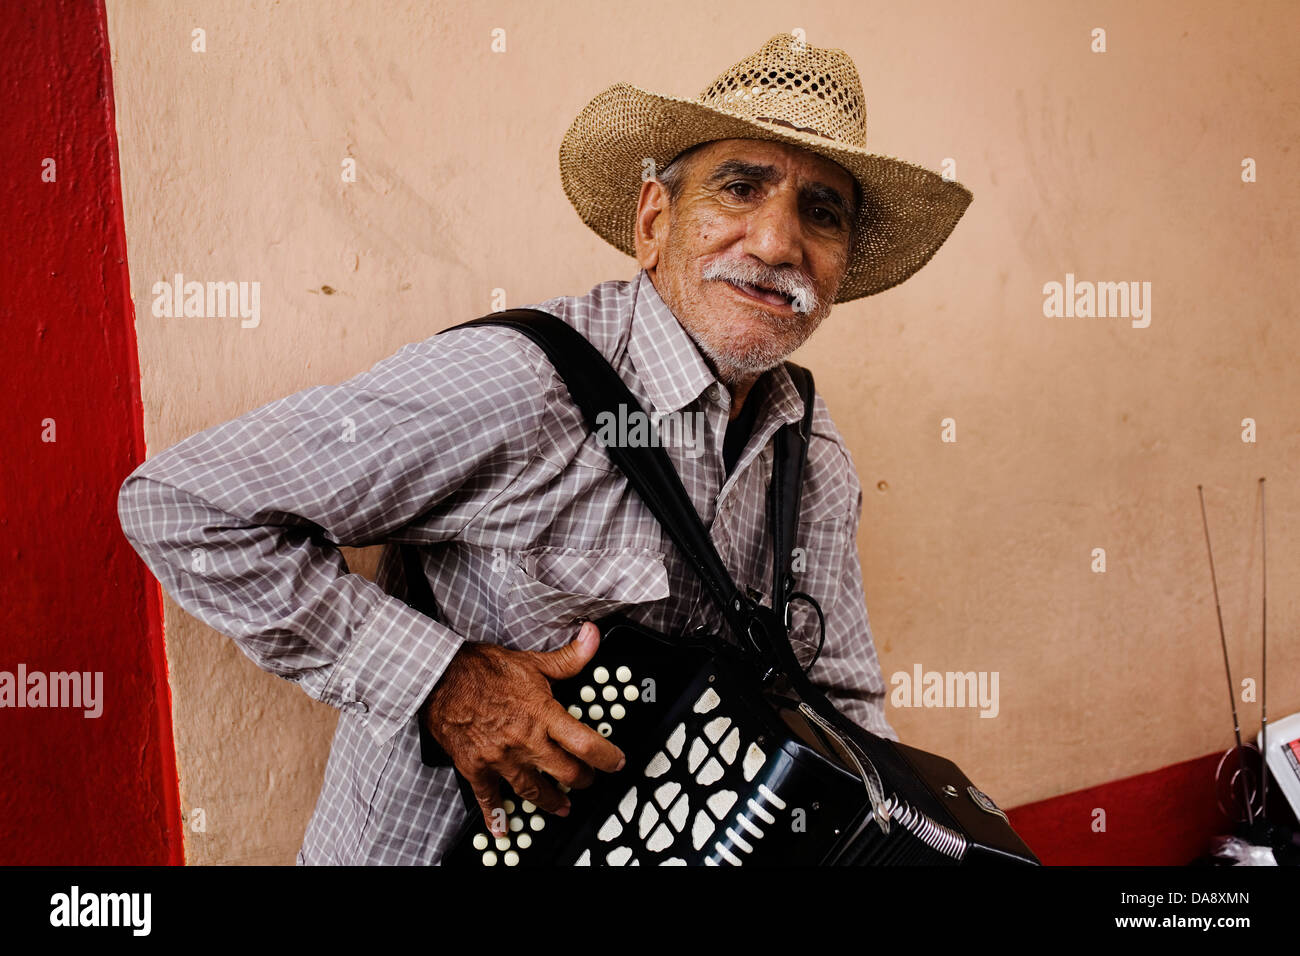 An accordion player in Monterrey Mexico. - Stock Image